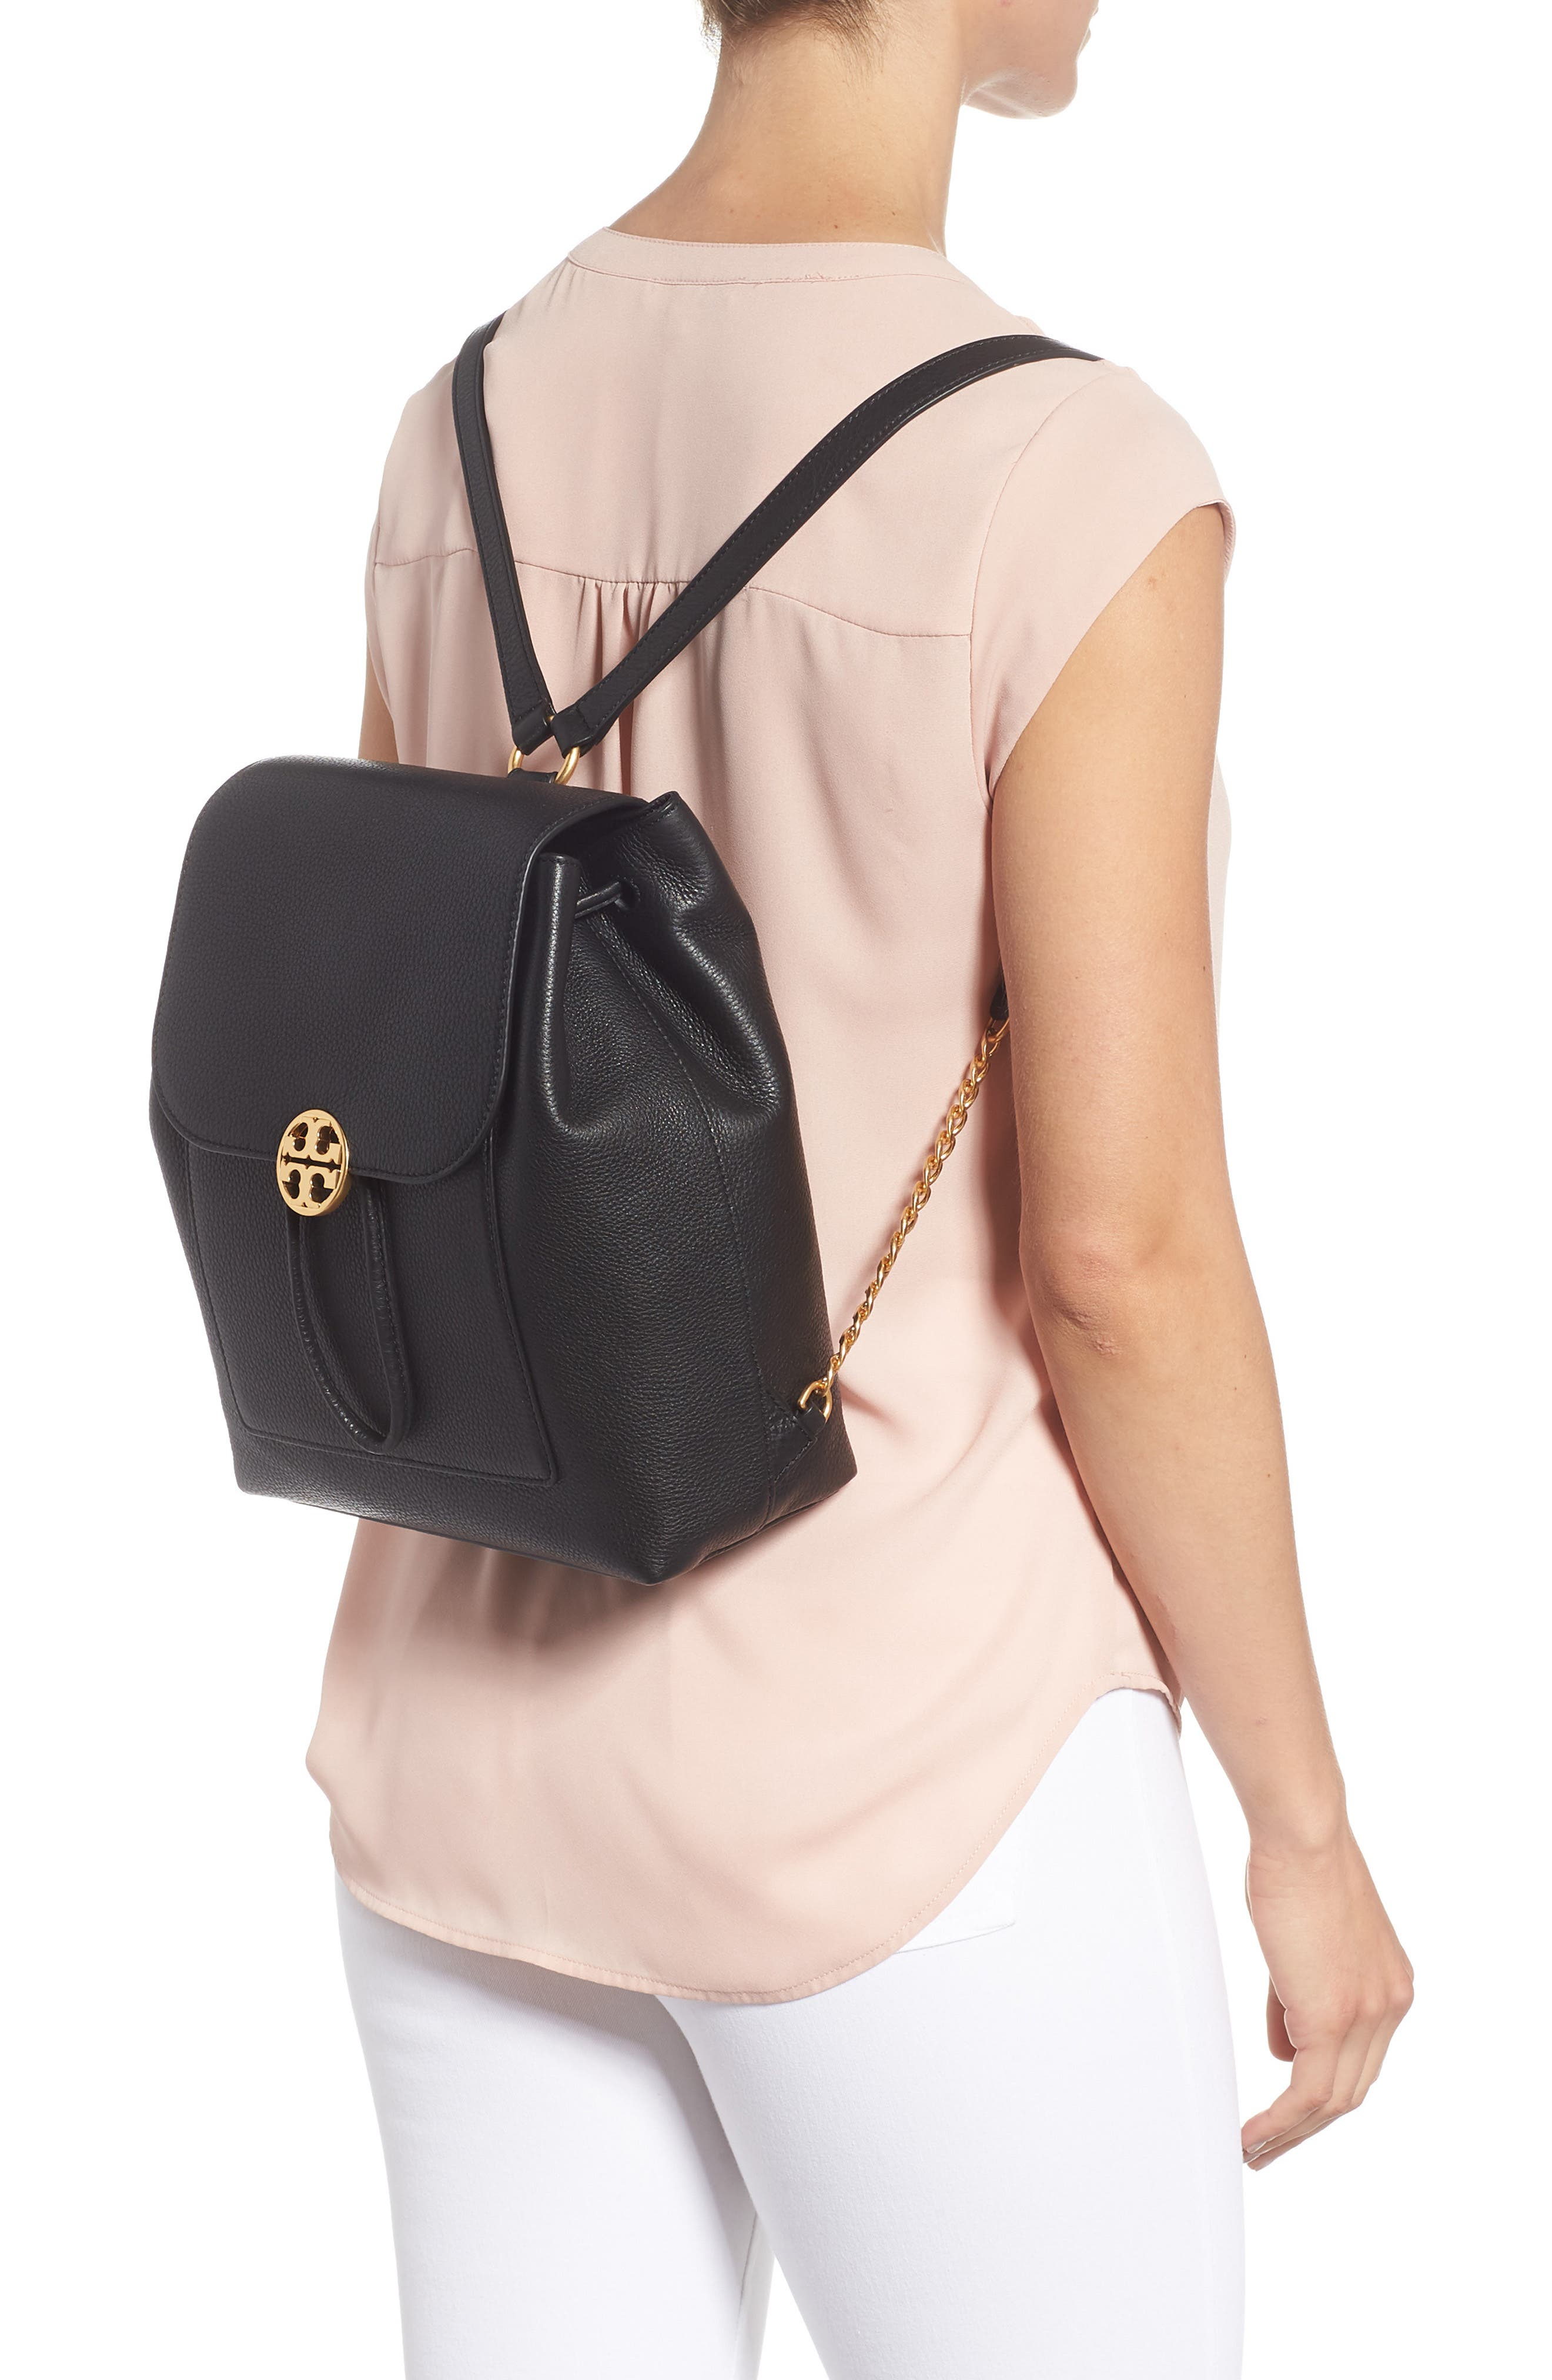 Chelsea Leather Backpack,                             Alternate thumbnail 2, color,                             001